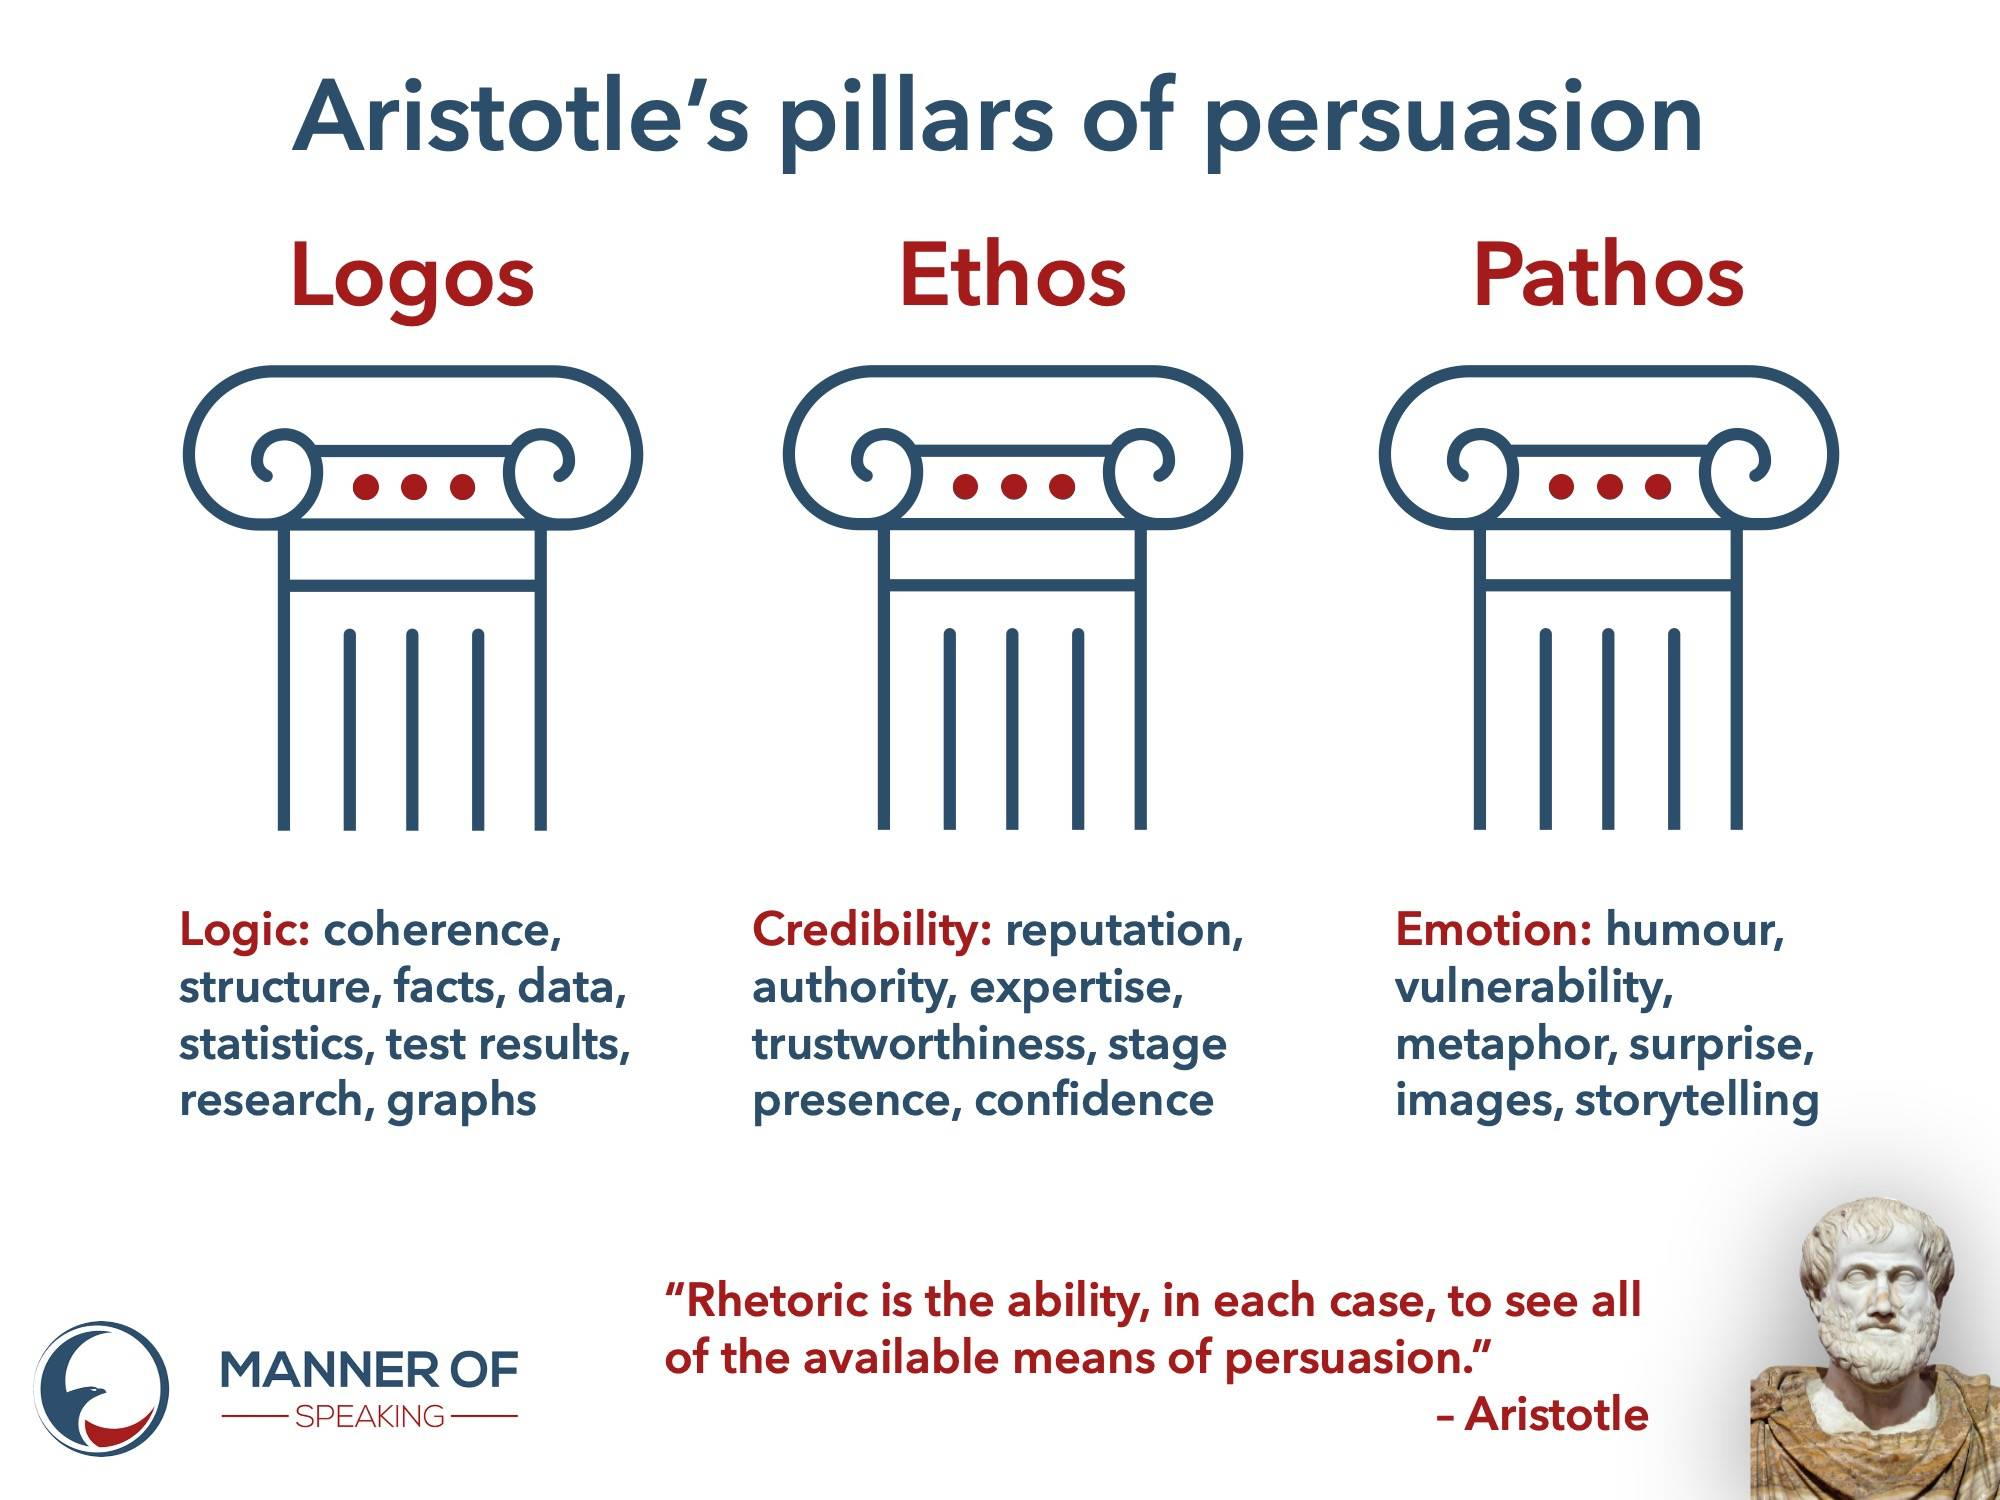 Pillars of persuasion